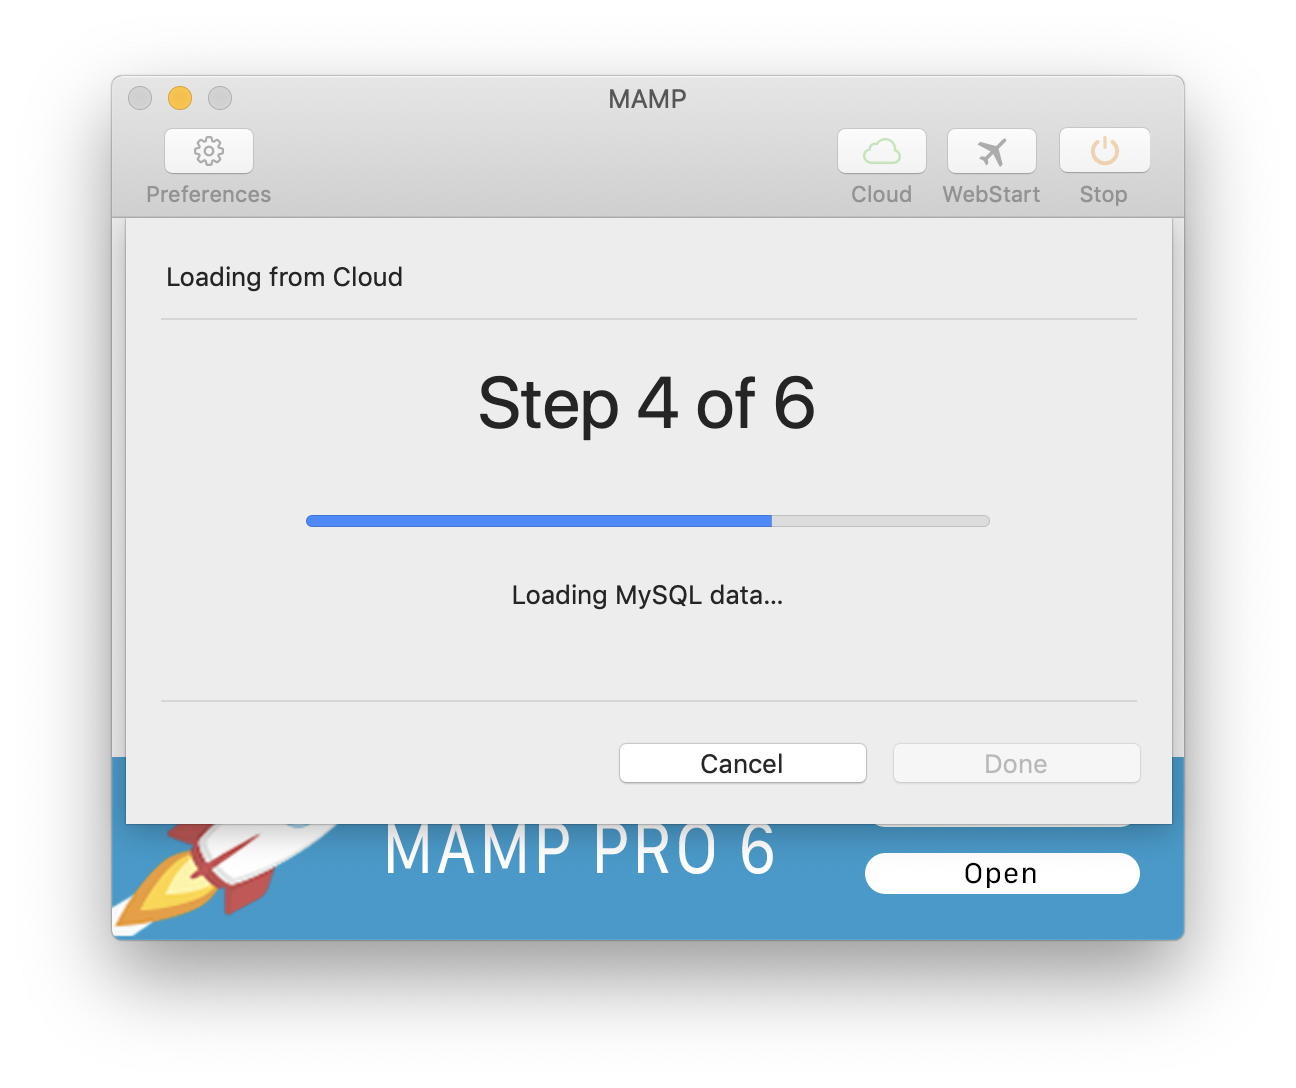 MAMP - Cloud - Load from Cloud